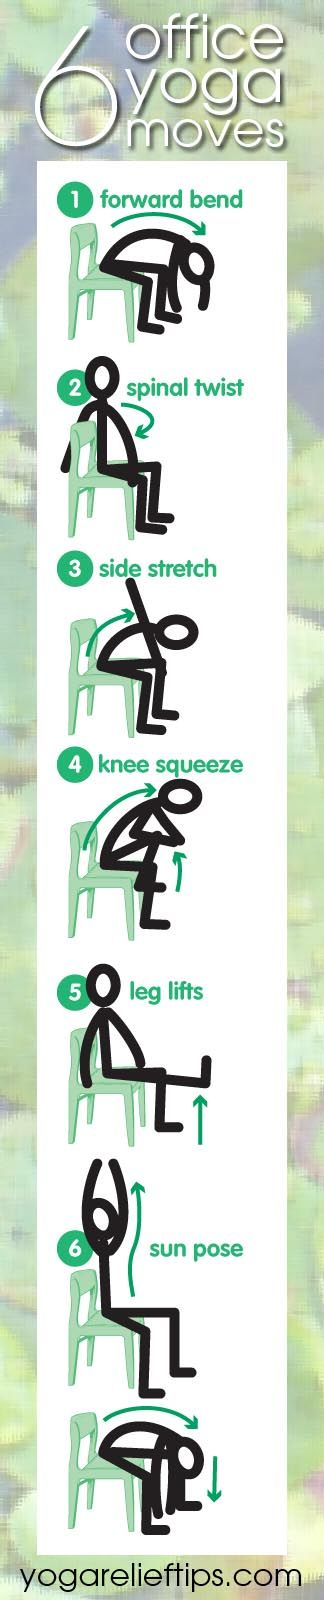 chair yoga | ideas to try! | pinterest | chair yoga and yoga